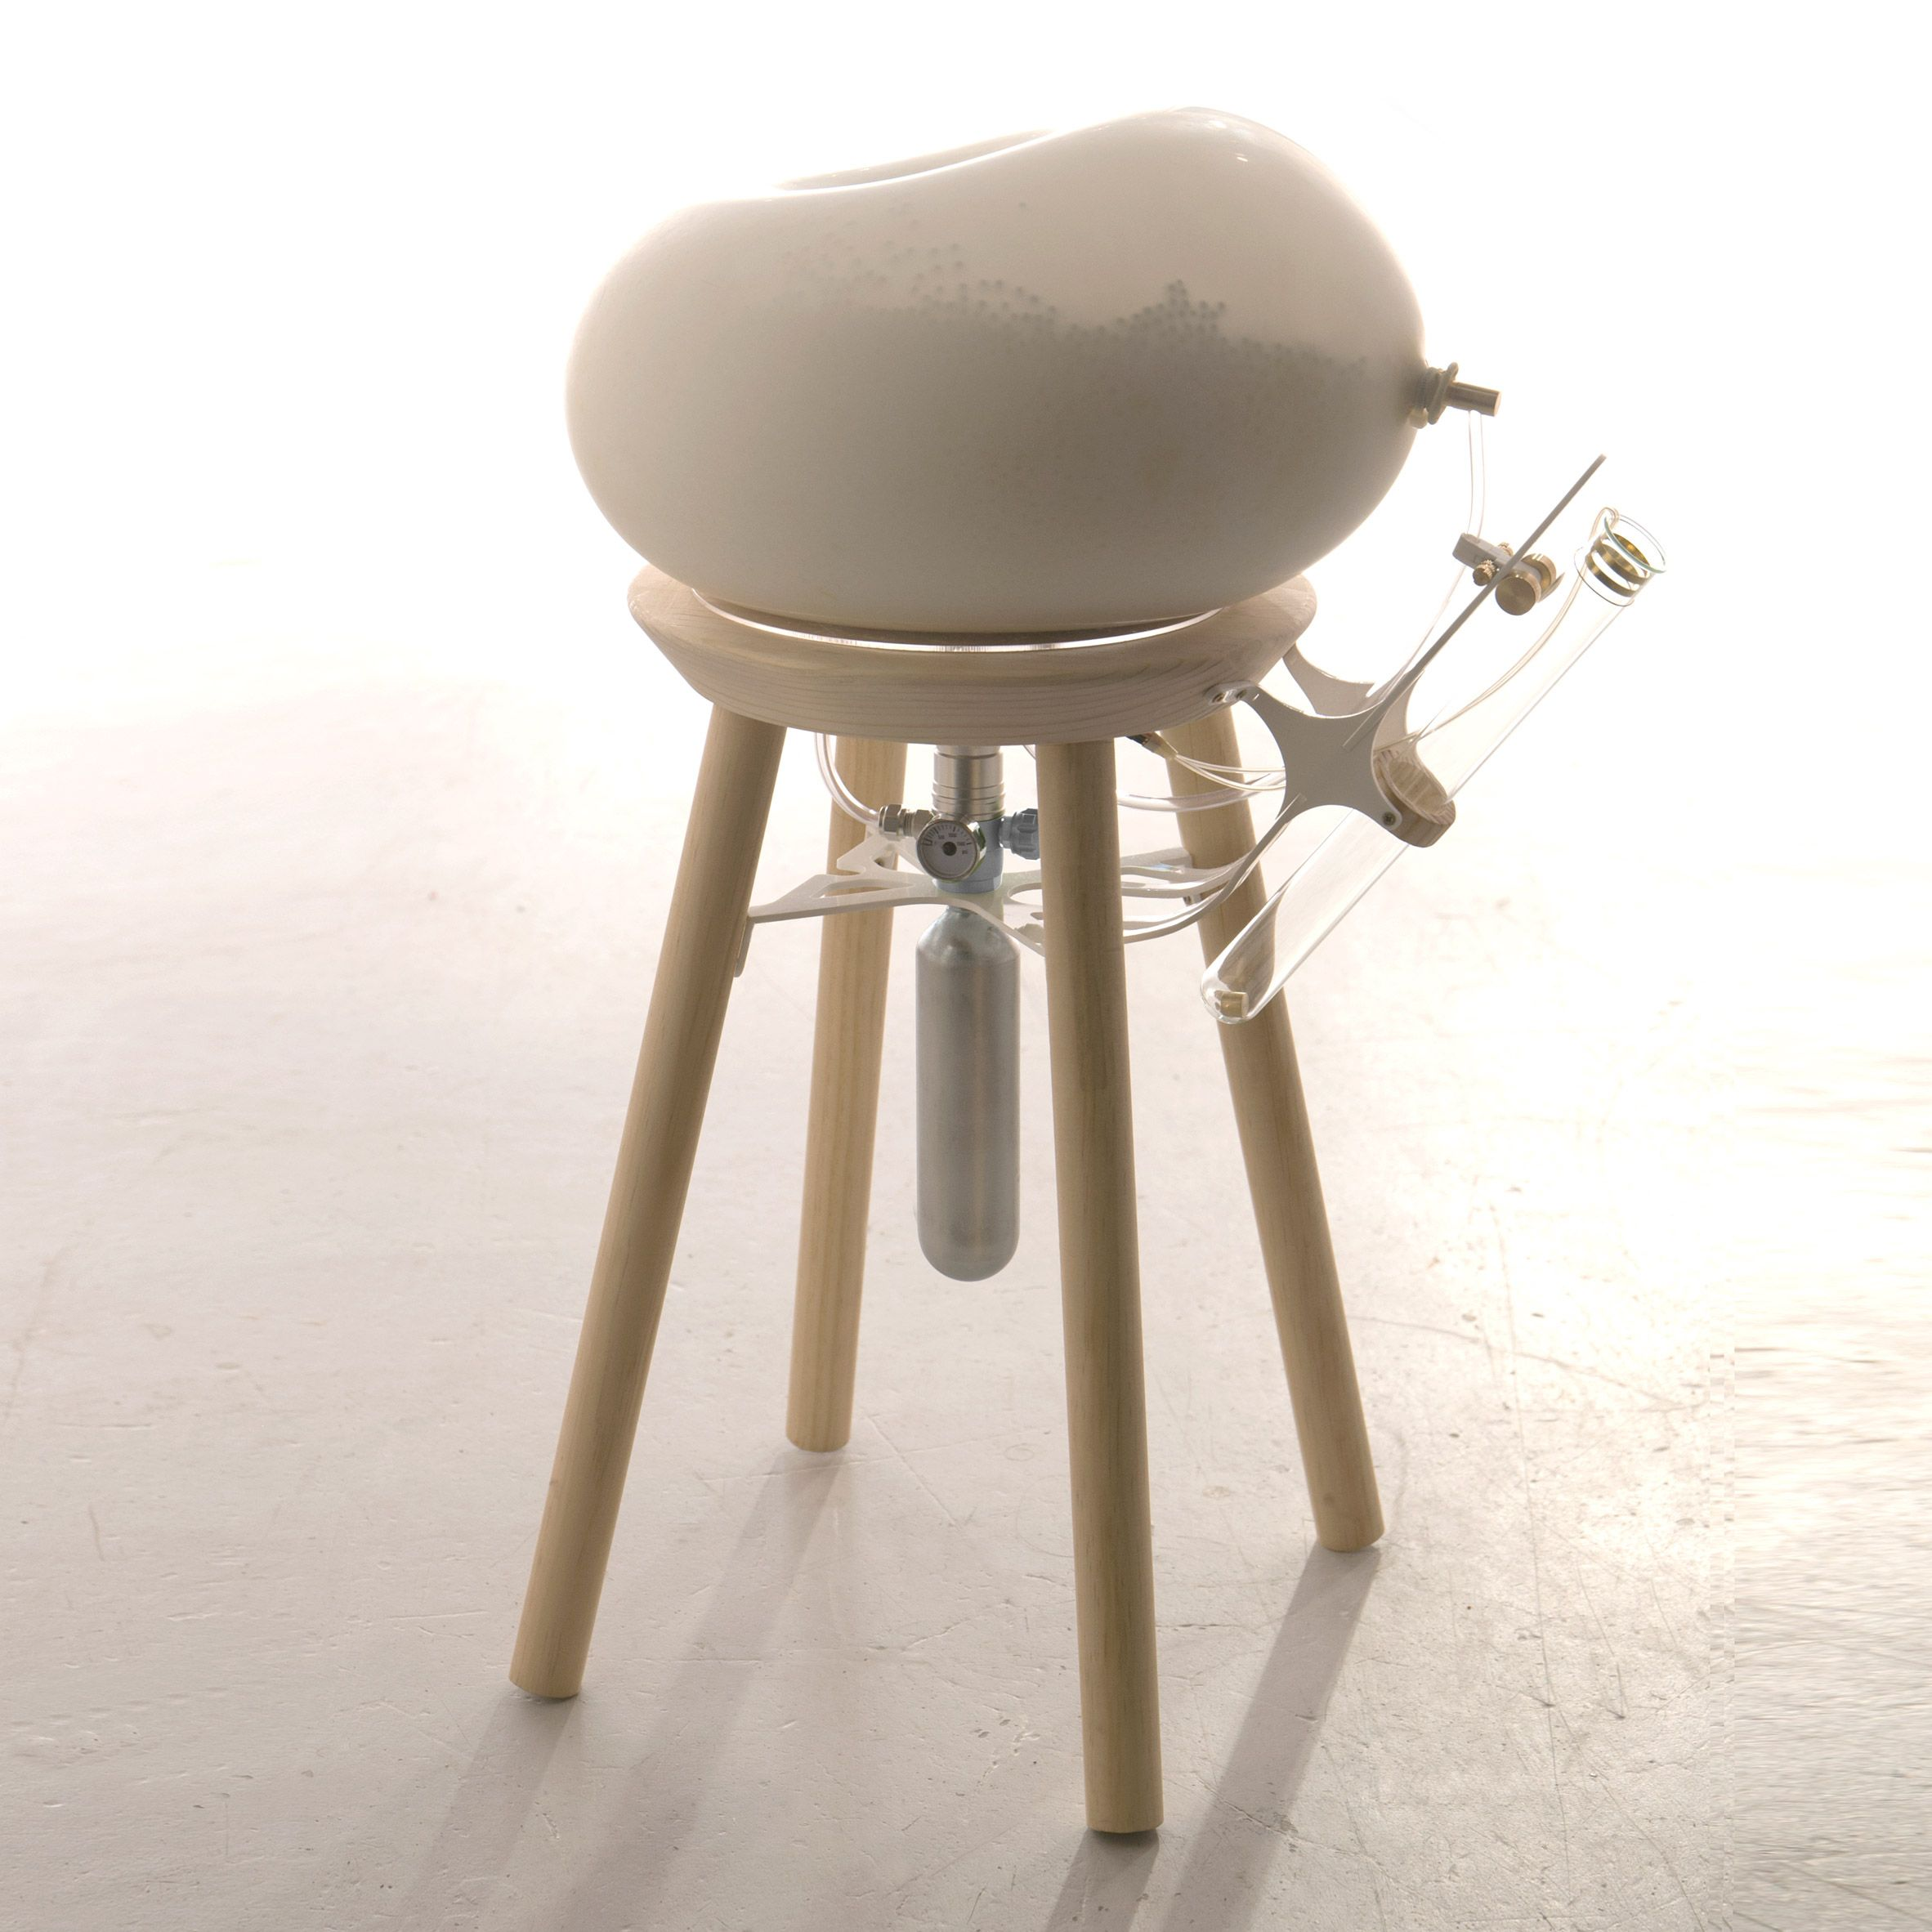 uncomfortable chair. Yi-Fei Chen Designs A Stool For Escaping Uncomfortable Social Situations Chair